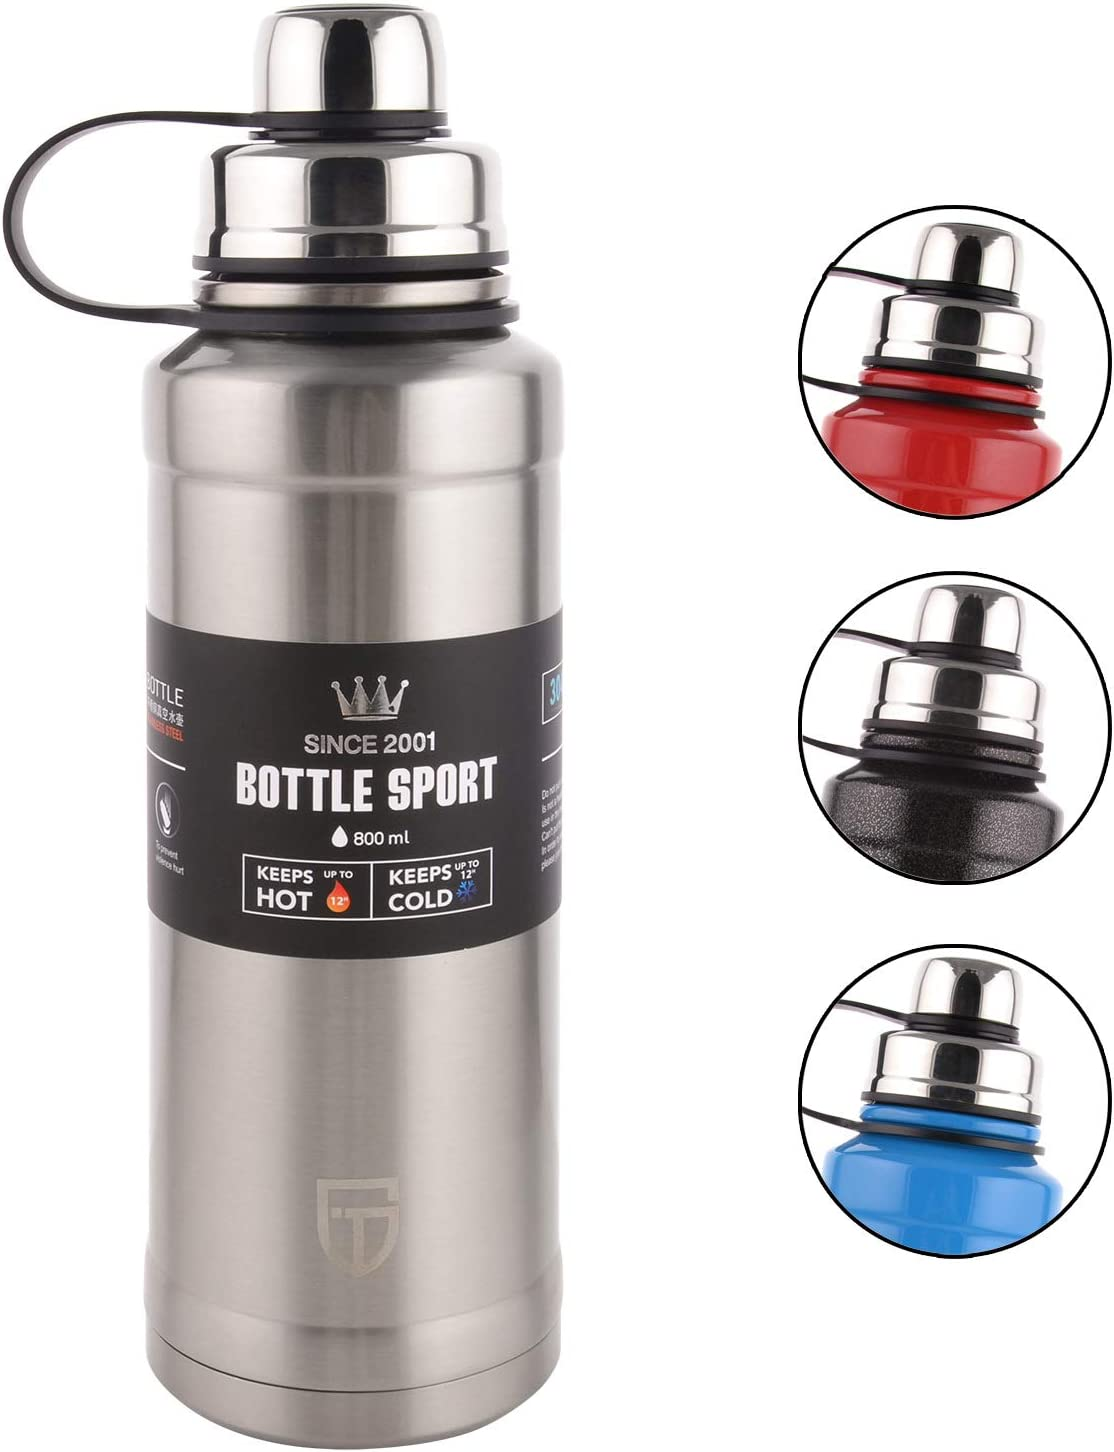 GTI Stainless Steel Vacuum Insulated Water Bottle, 28 Ounce Sports Thermos Flask with Spout Lid, Built-in Filter Thermo Mug, Keeps Hot or Cold with Double Wall Insulated Sweat Proof Design, Silver.